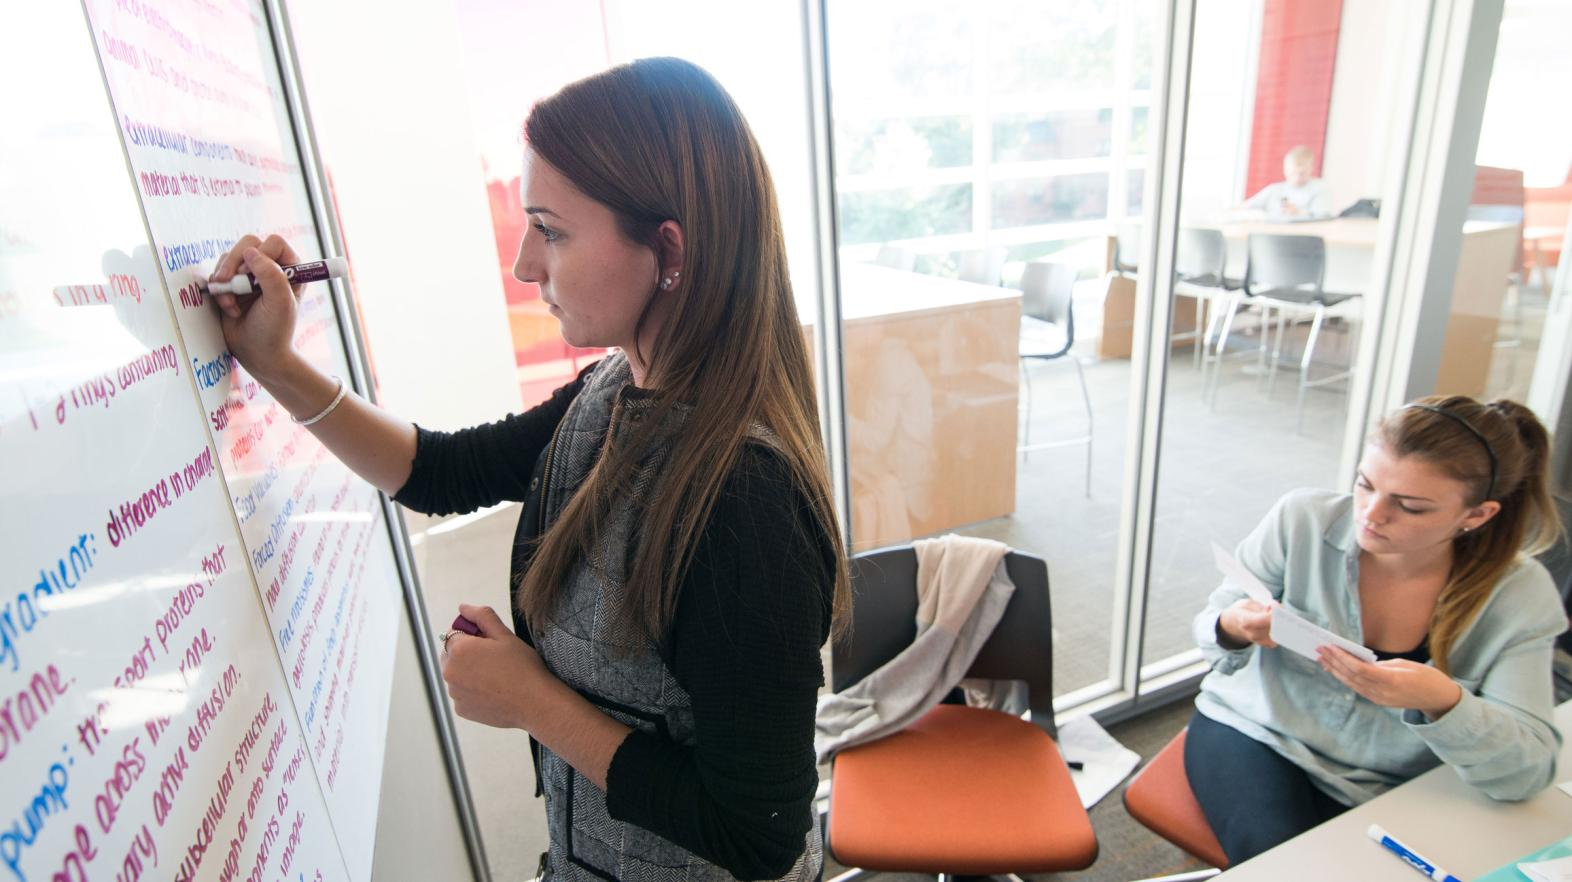 A female student takes notes on the white boards in the learning commons